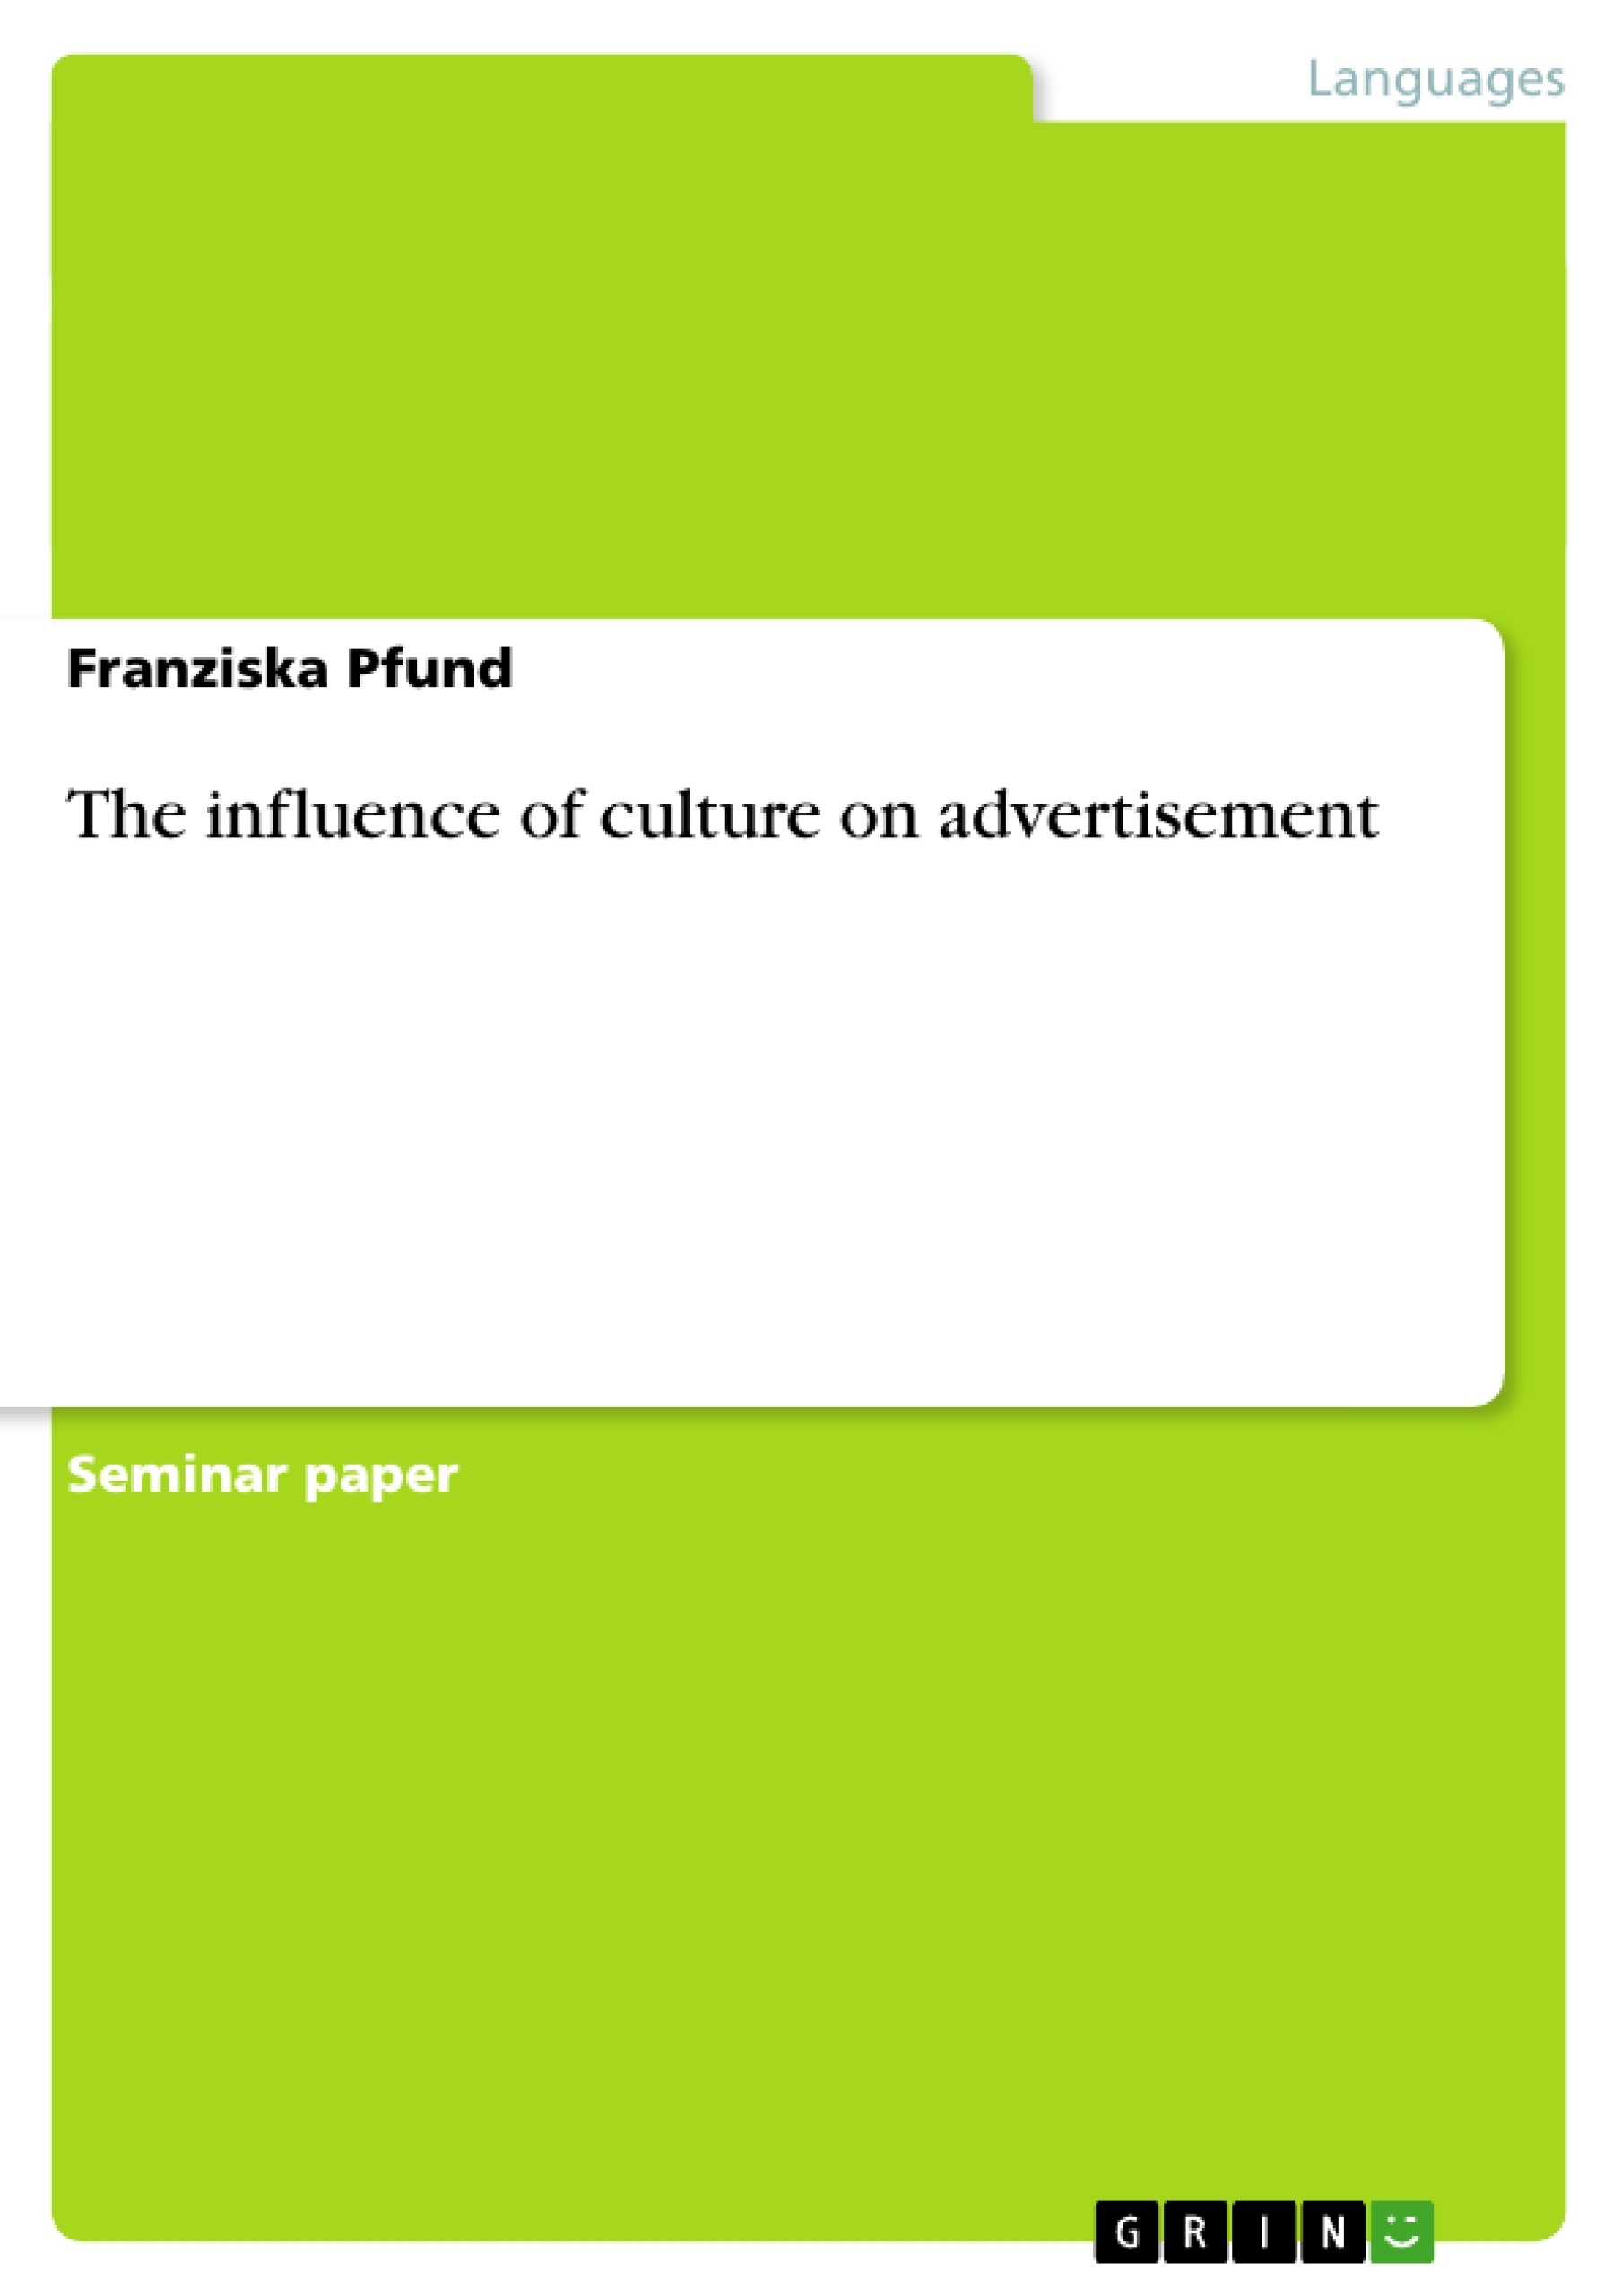 the influence of culture on advertisement publish your master s the influence of culture on advertisement publish your master s thesis bachelor s thesis essay or term paper